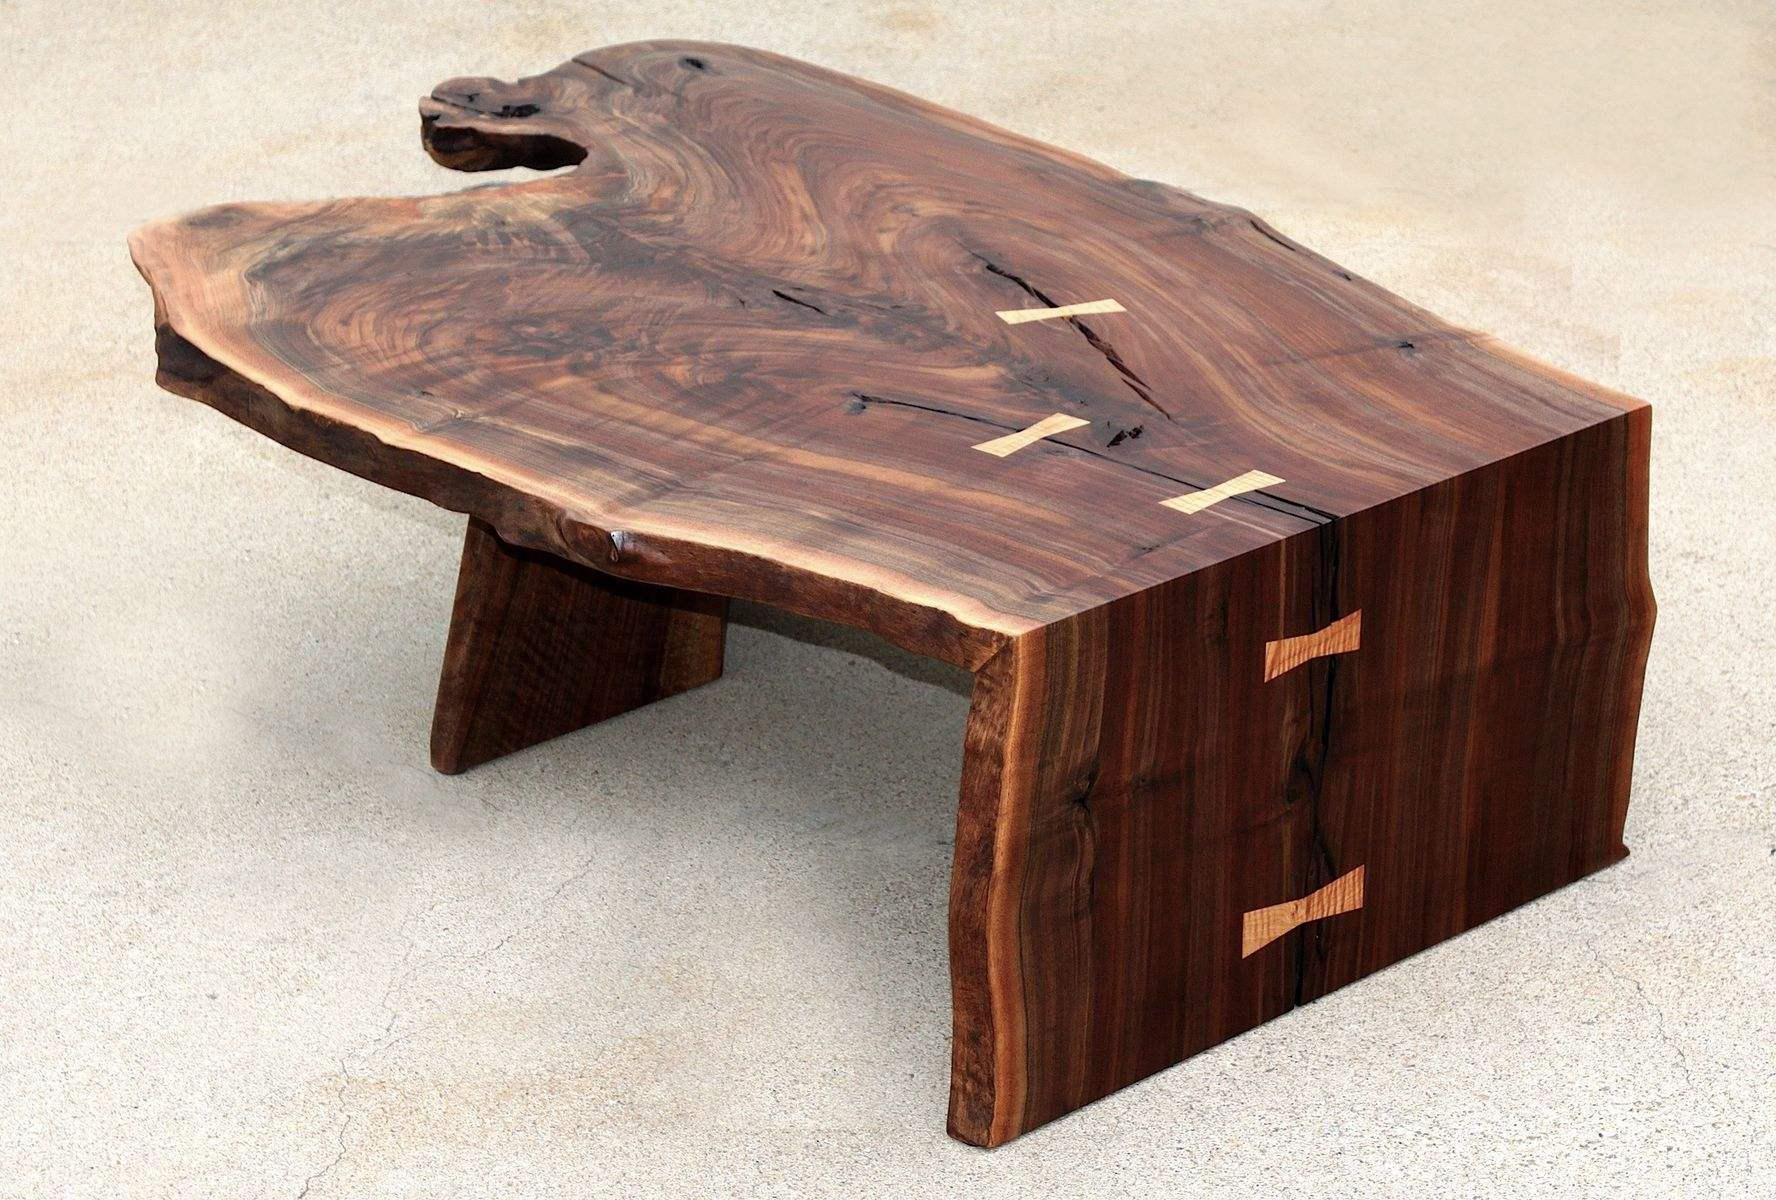 Custom Modern Coffee/cocktail Table, Waterfall, Walnutaaron Throughout Popular Waterfall Coffee Tables (View 6 of 20)